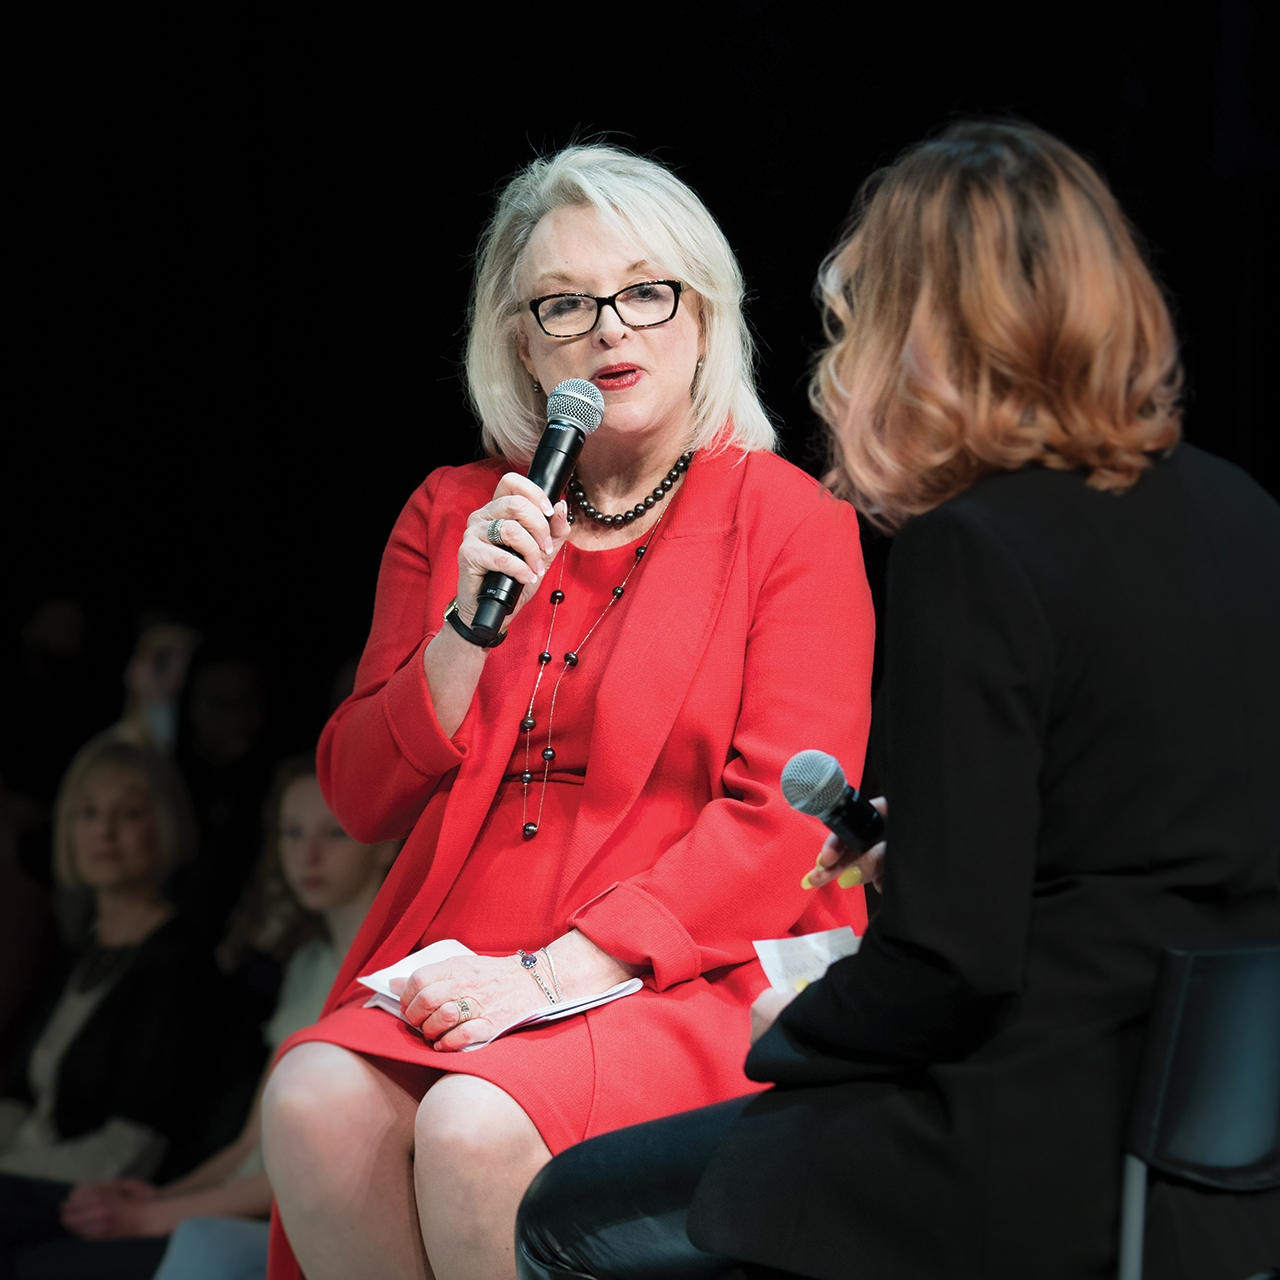 Style Show keynote speaker Margery Krevsky-Dosey, founder and owner of Productions Plus – The Talent Shop, provided a glimpse of real-world business strategy as she told students about the close ties between fashion and automotive design.